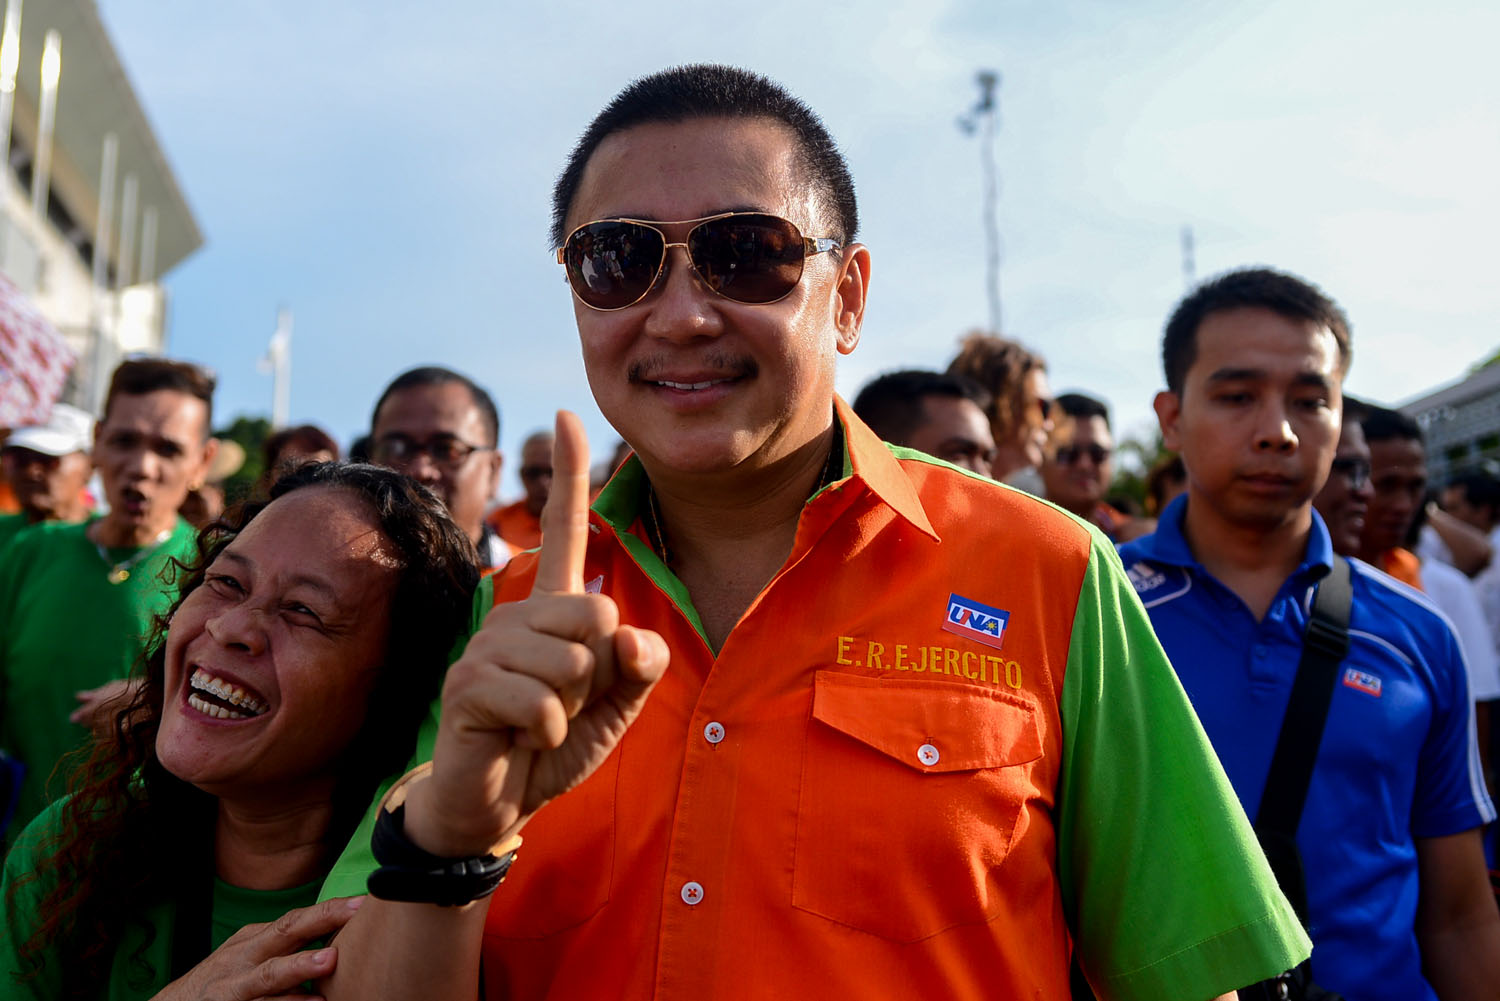 SERIOUS DRIVE. Vince Lazatin of the Transparency and Accountability Network says the decision to disqualify former Laguna Governor ER Ejercito for overspending shows the Comelec was serious about campaign finance. File photo by Jansen Romero/Rappler